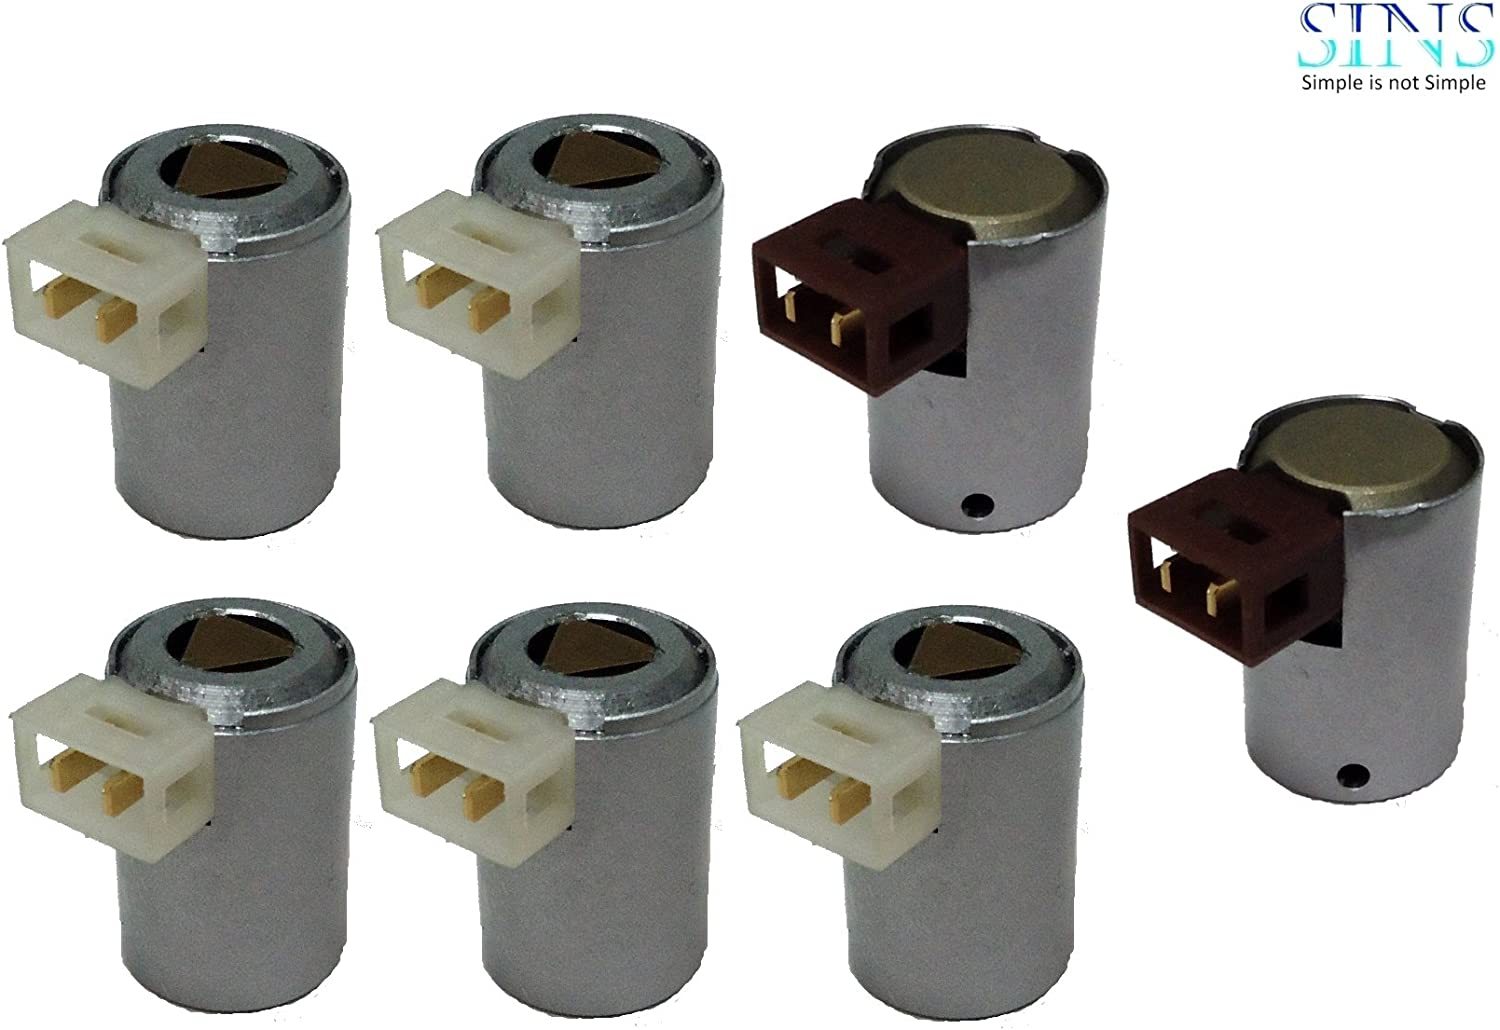 6 REQUIRED OEM SOLENOID VW 095-098 /& 01M//N//PSHIFT